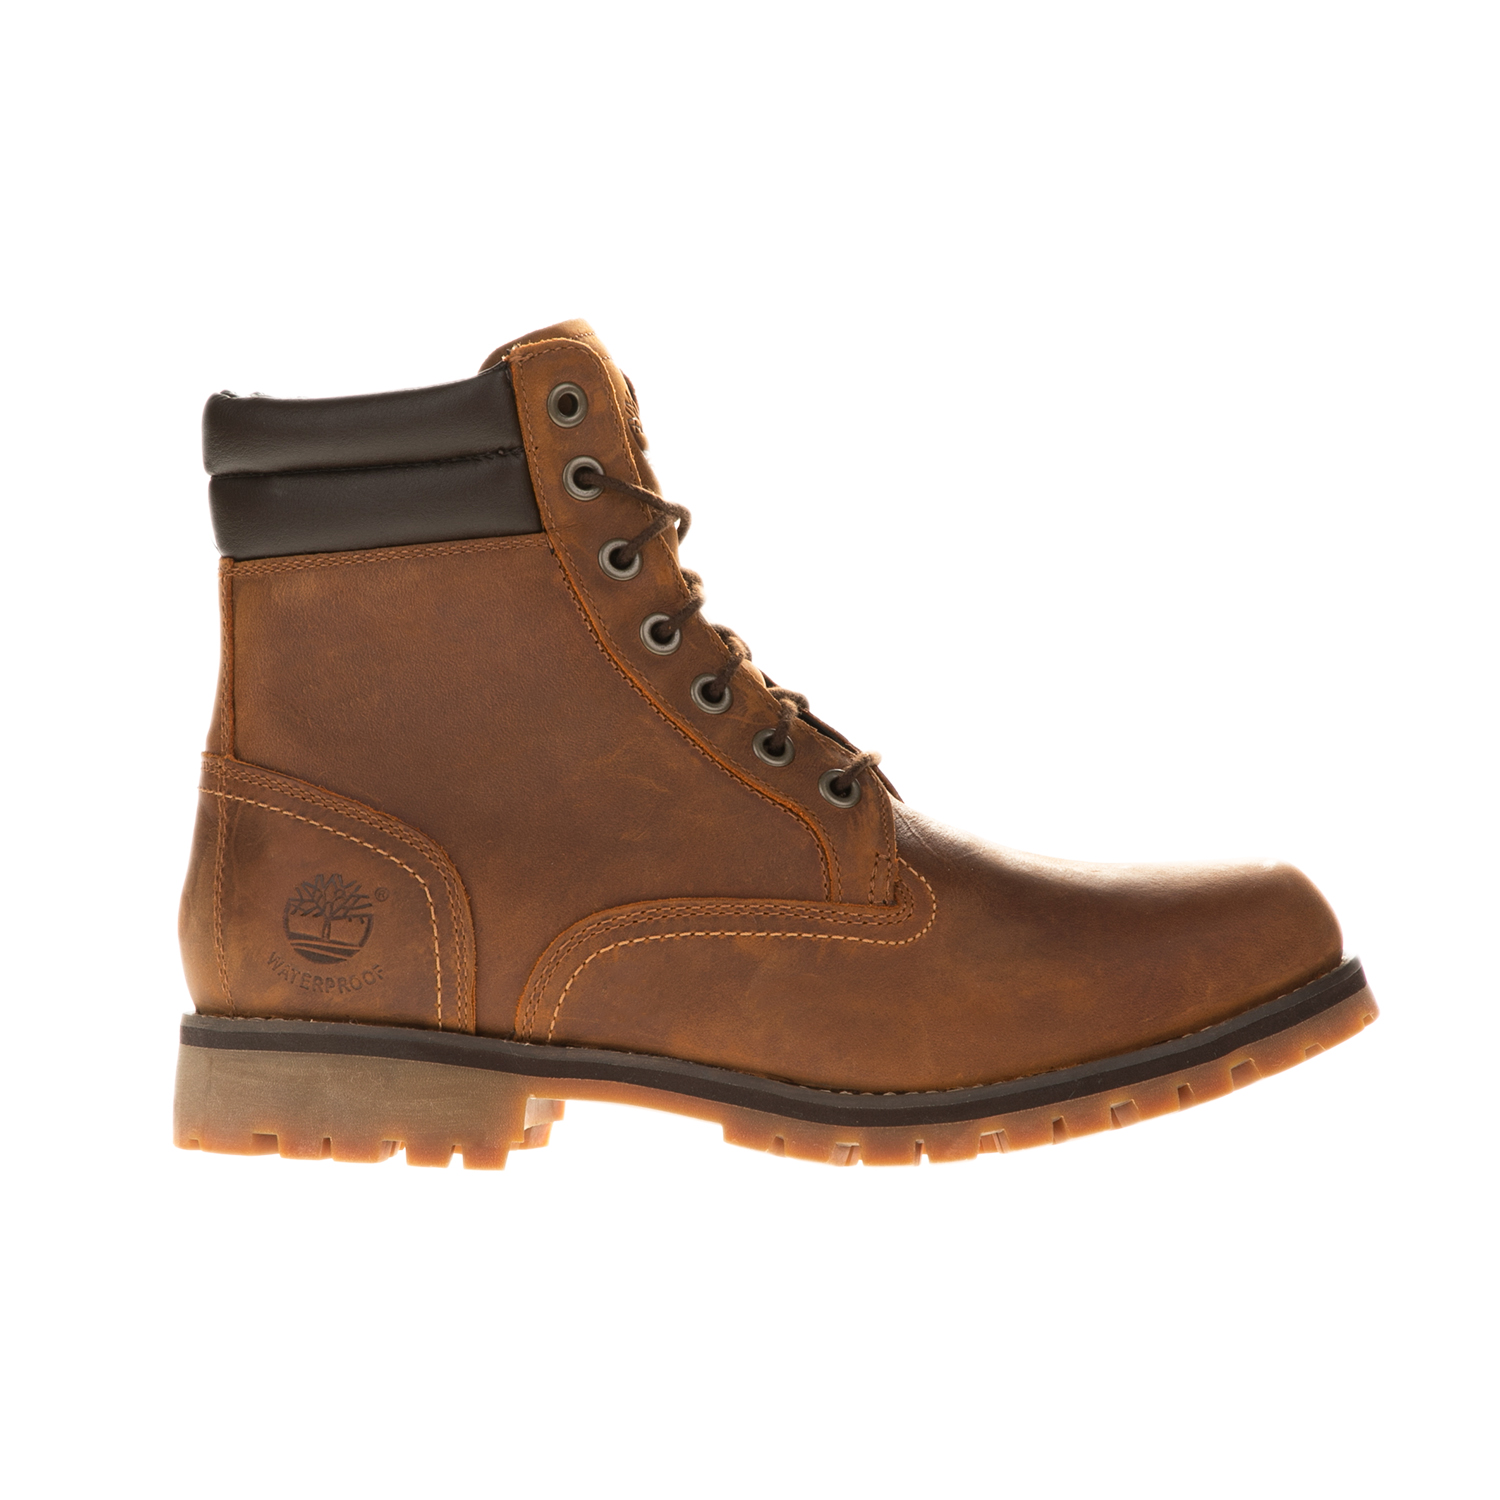 TIMBERLAND – Ανδρικά μποτάκια TIMBERLAND A17CK-A FORAKER 6 IN καφέ